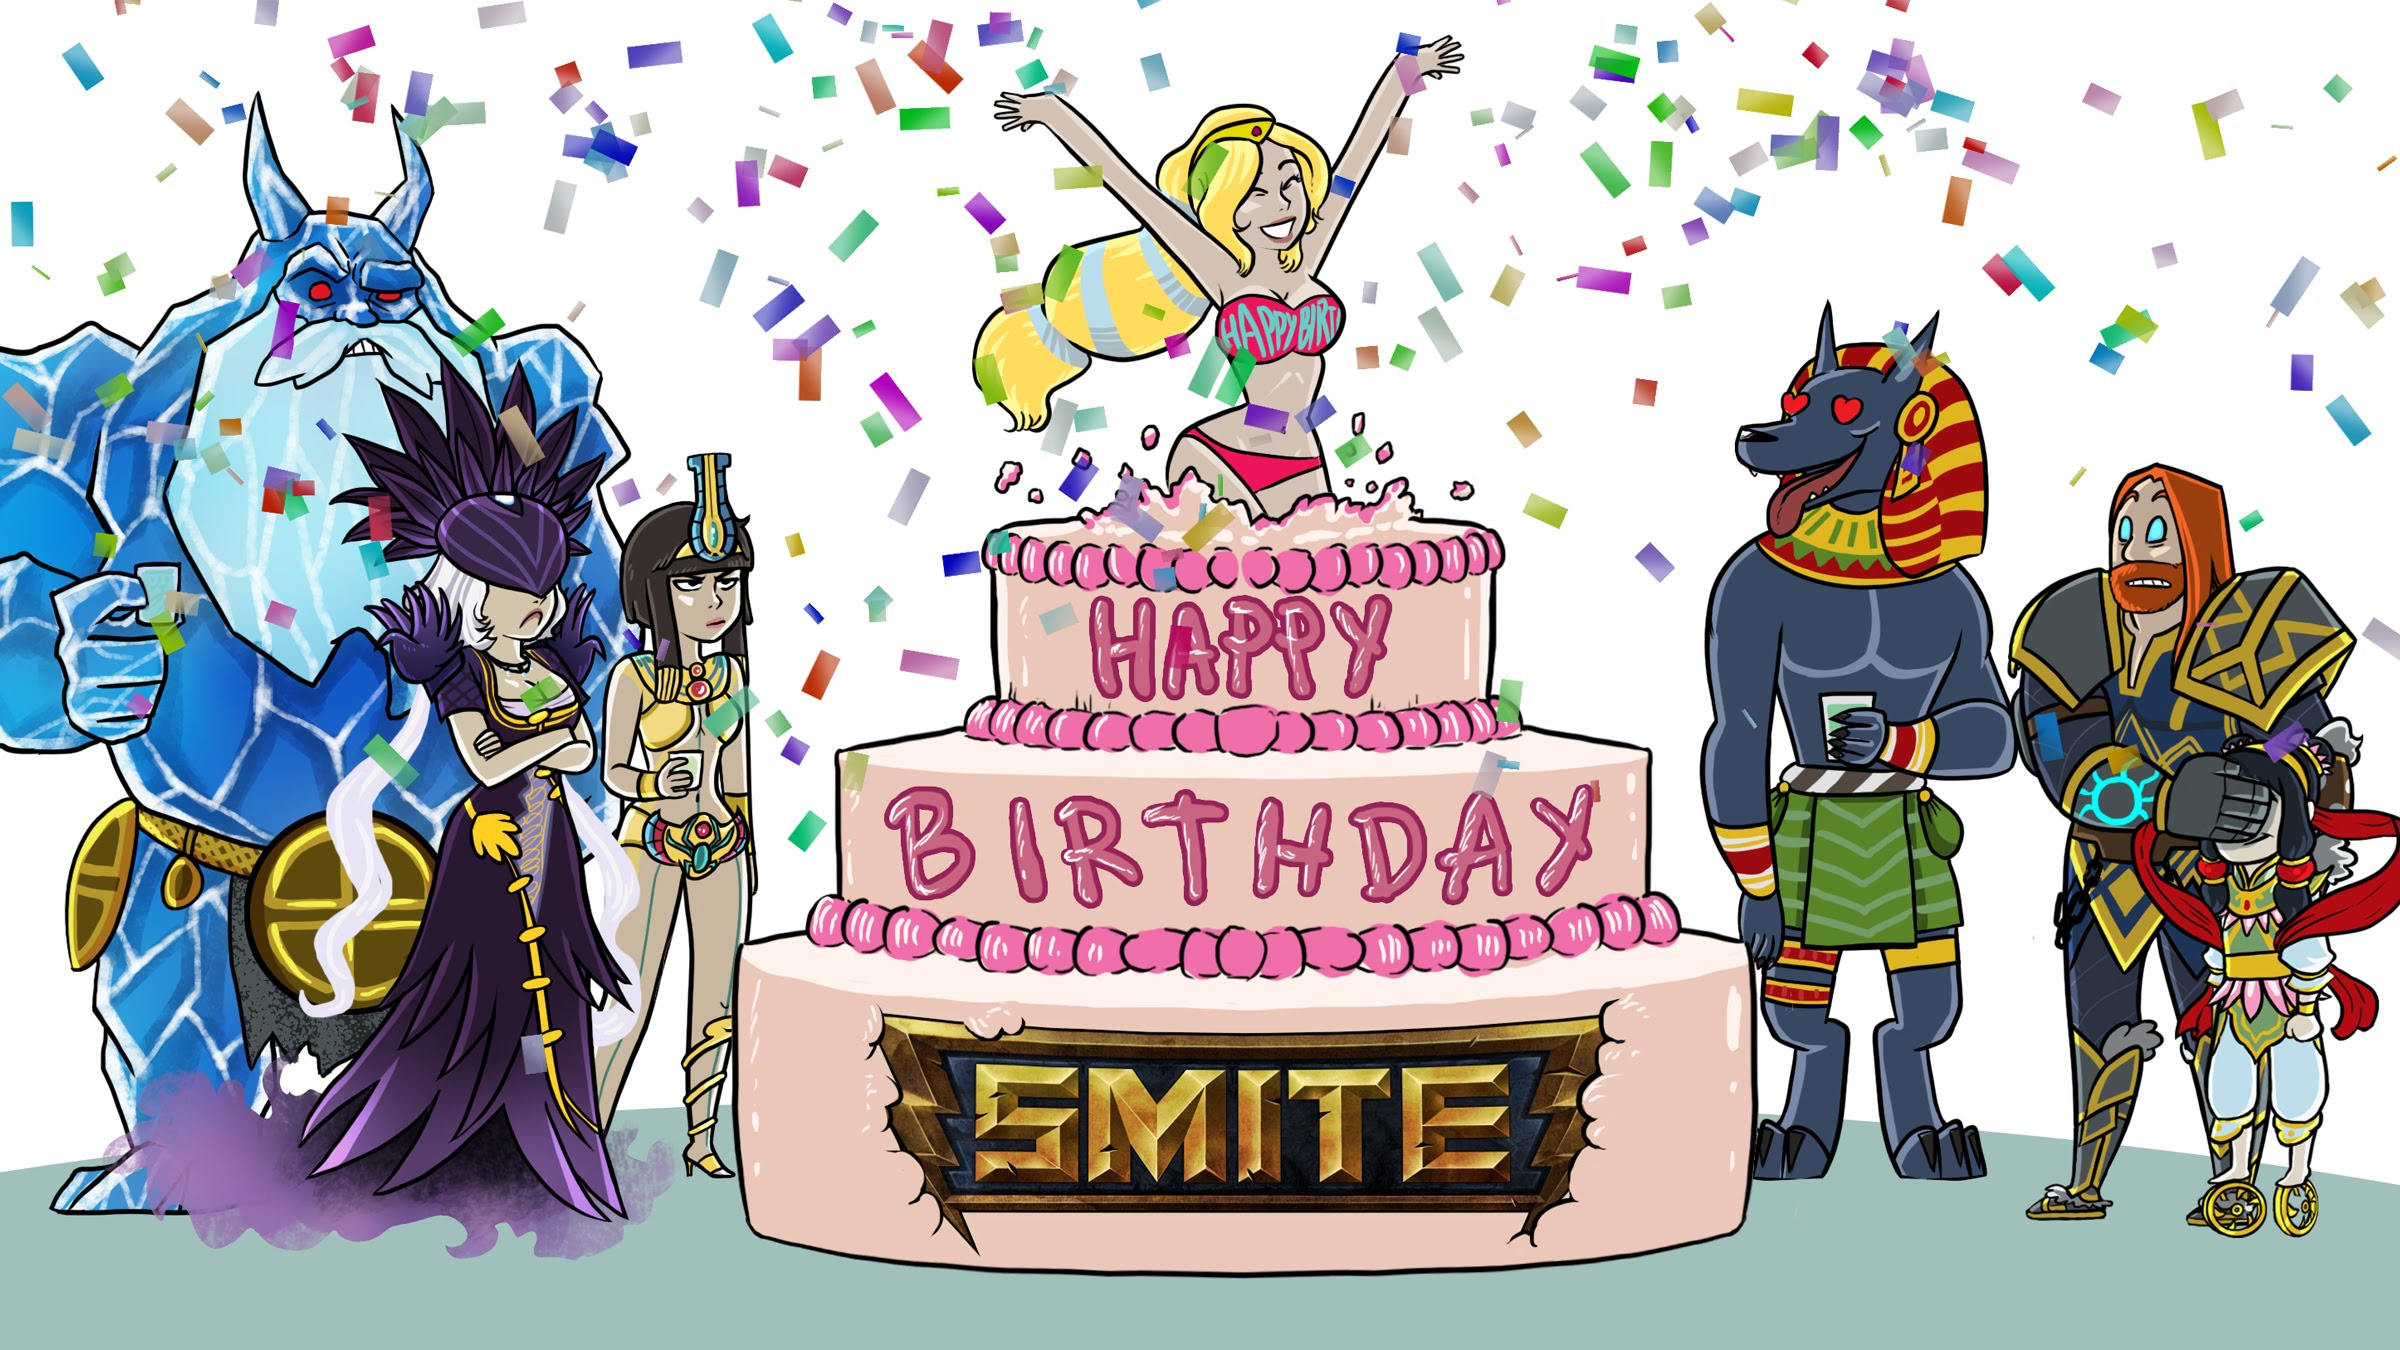 Happy Birthday SMITE - Music Video (Katy Perry Parody) Thumbnail